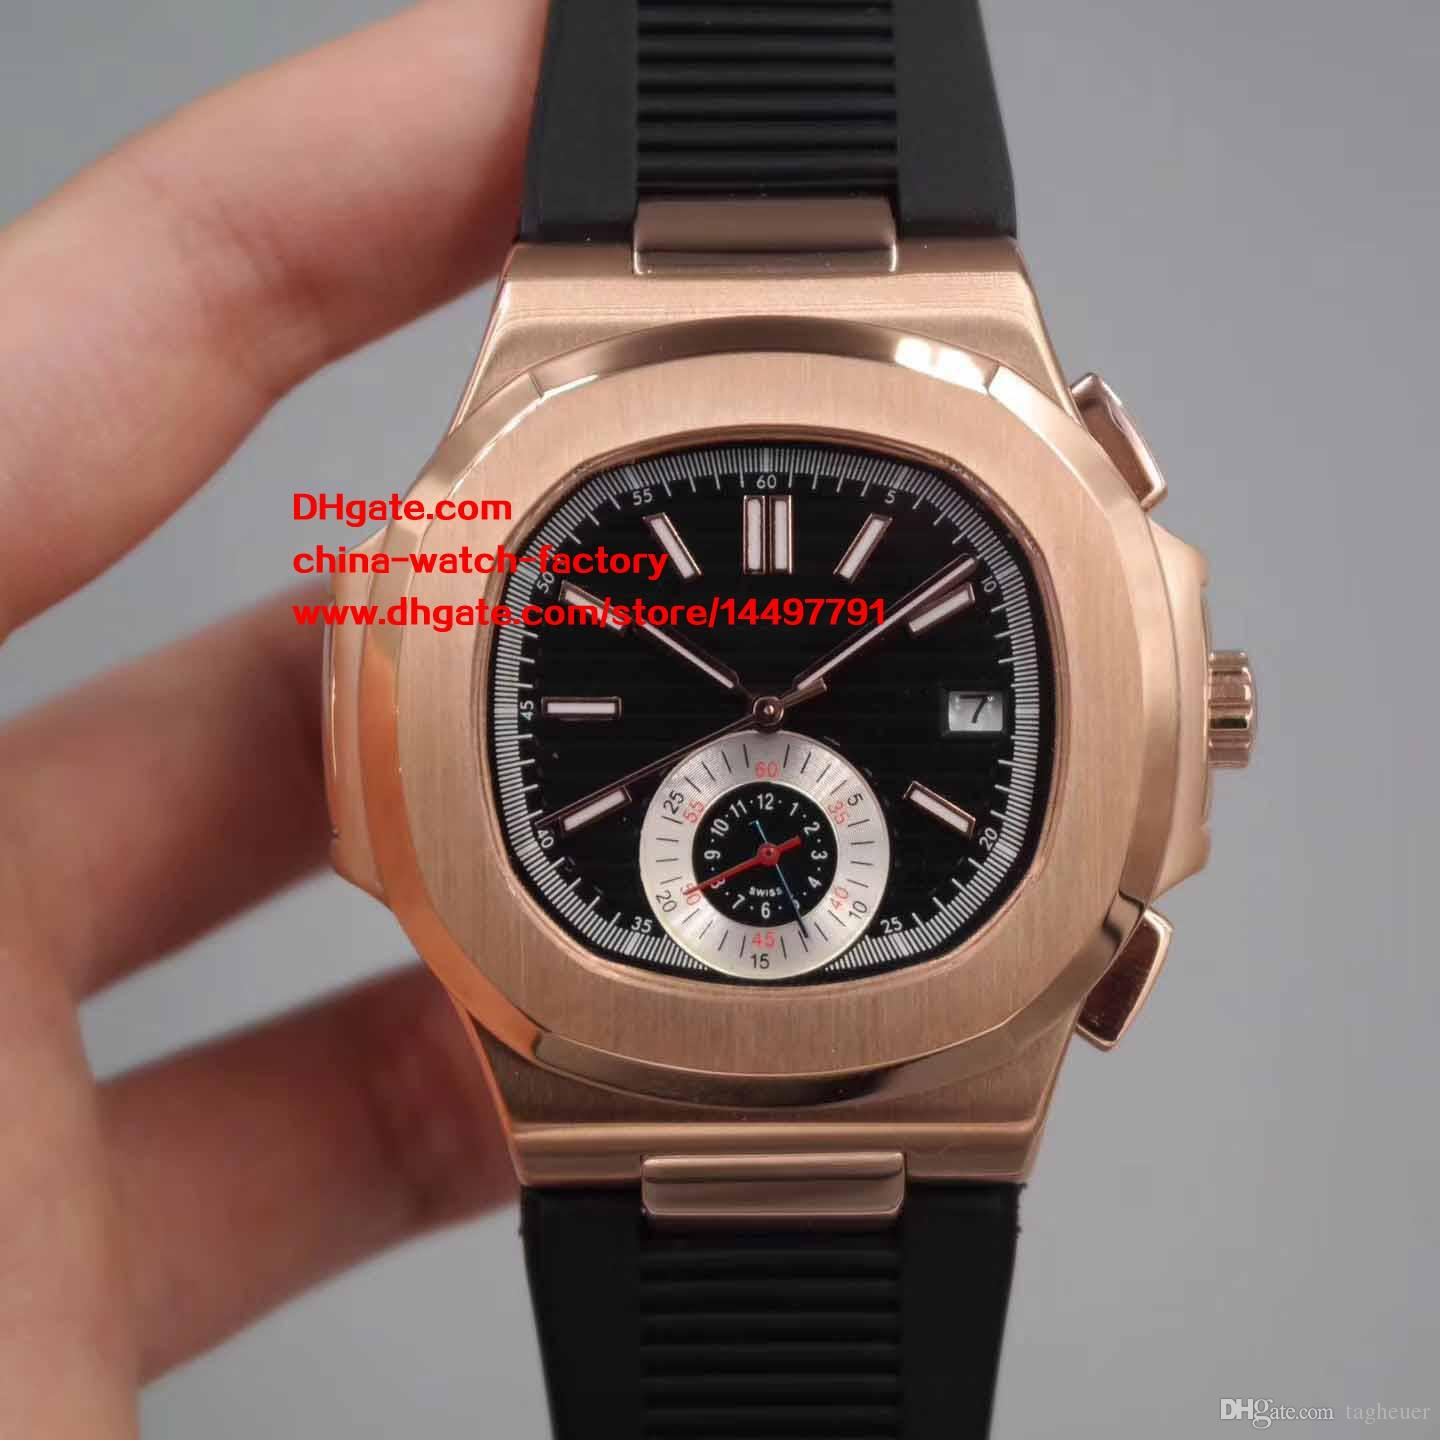 watch automatic quality mens fashion watches high waterproof wristwatch dial s frank wholesale men luxury best luminous black product gift